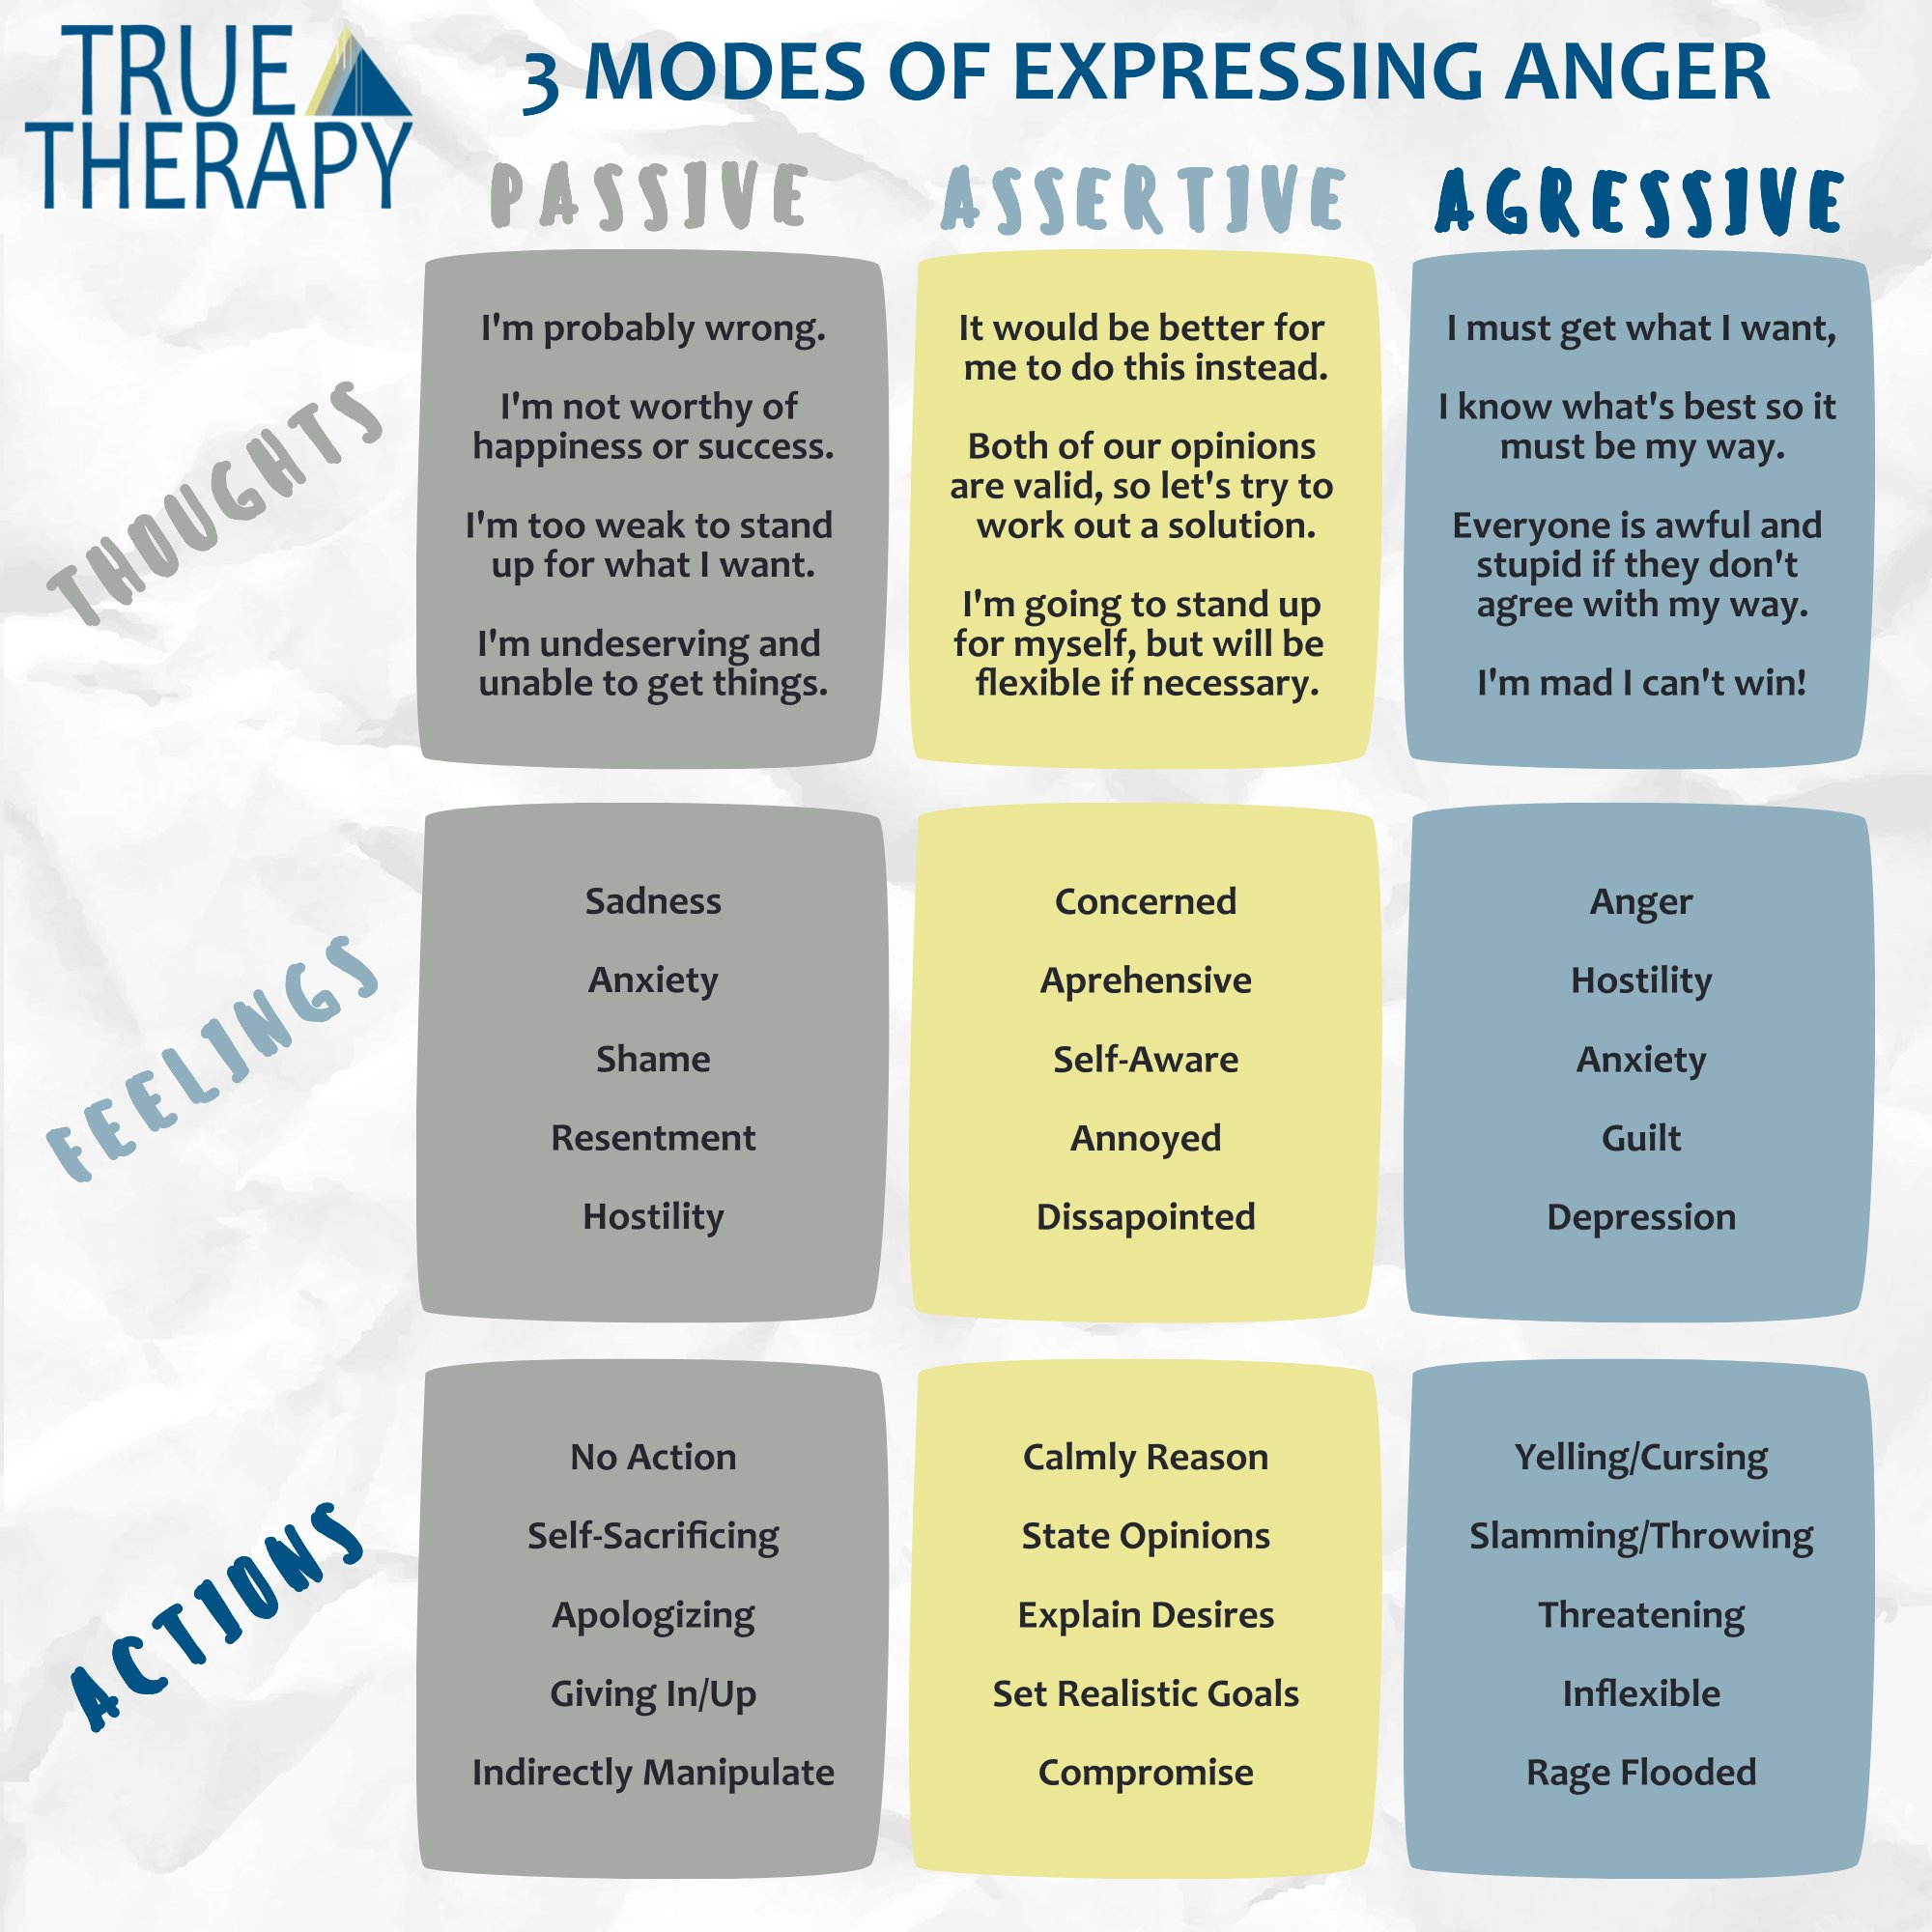 3 Modes of Expressing Anger